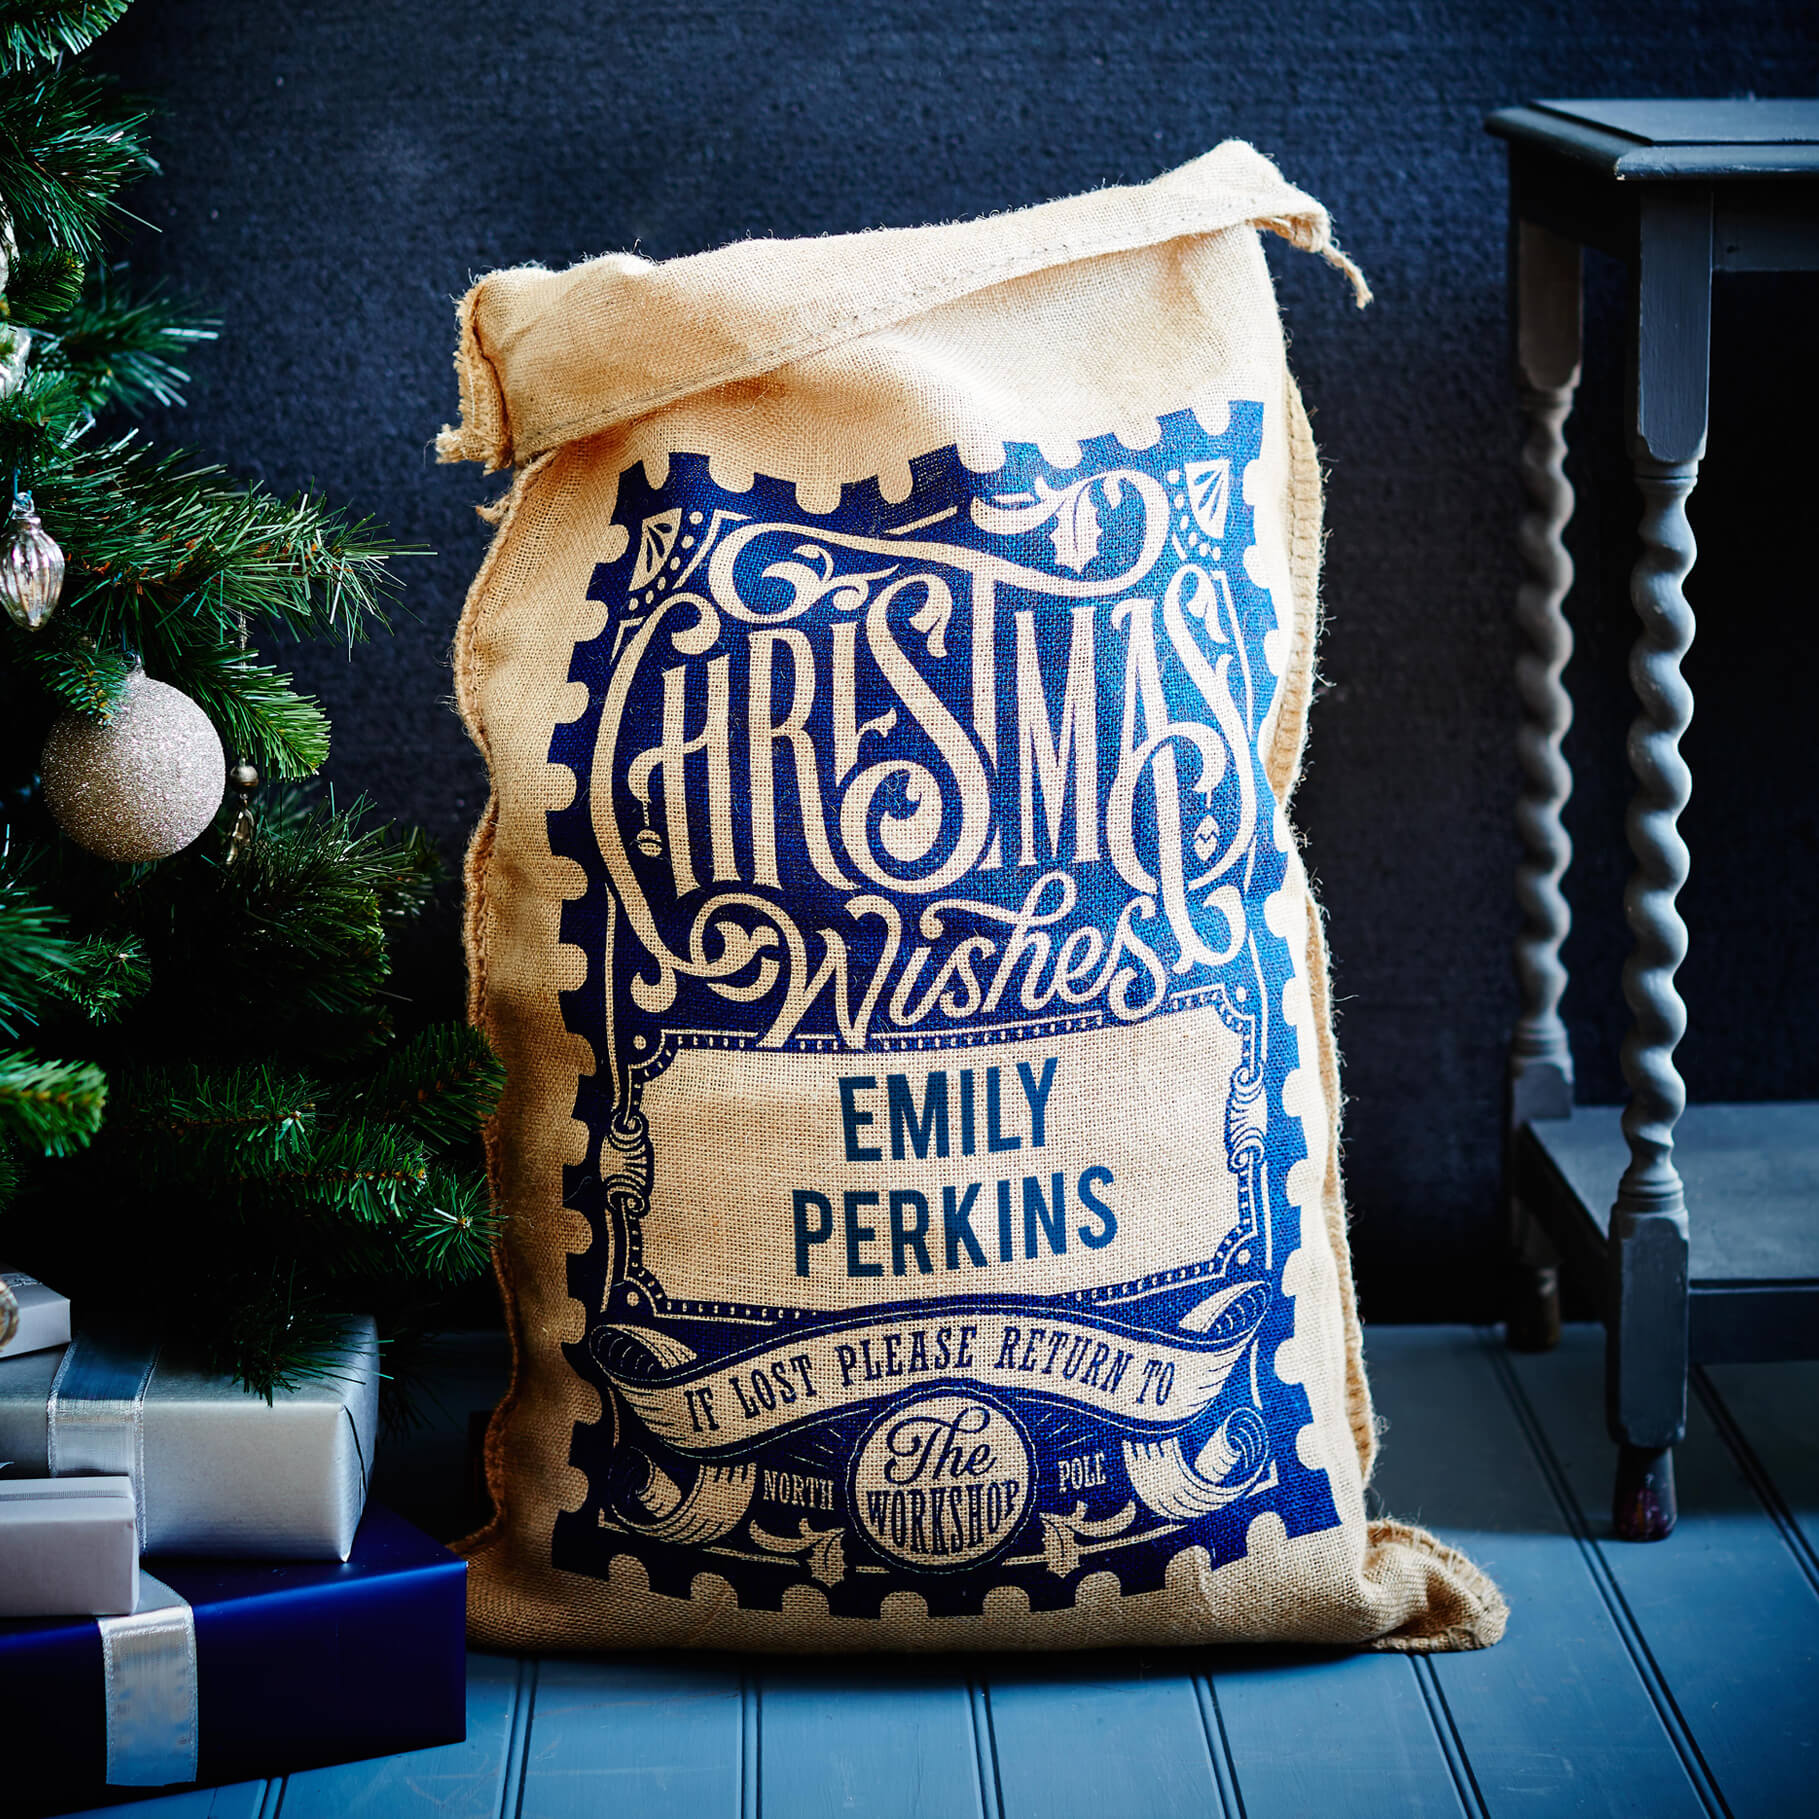 The Blue Rowland Christmas Sack